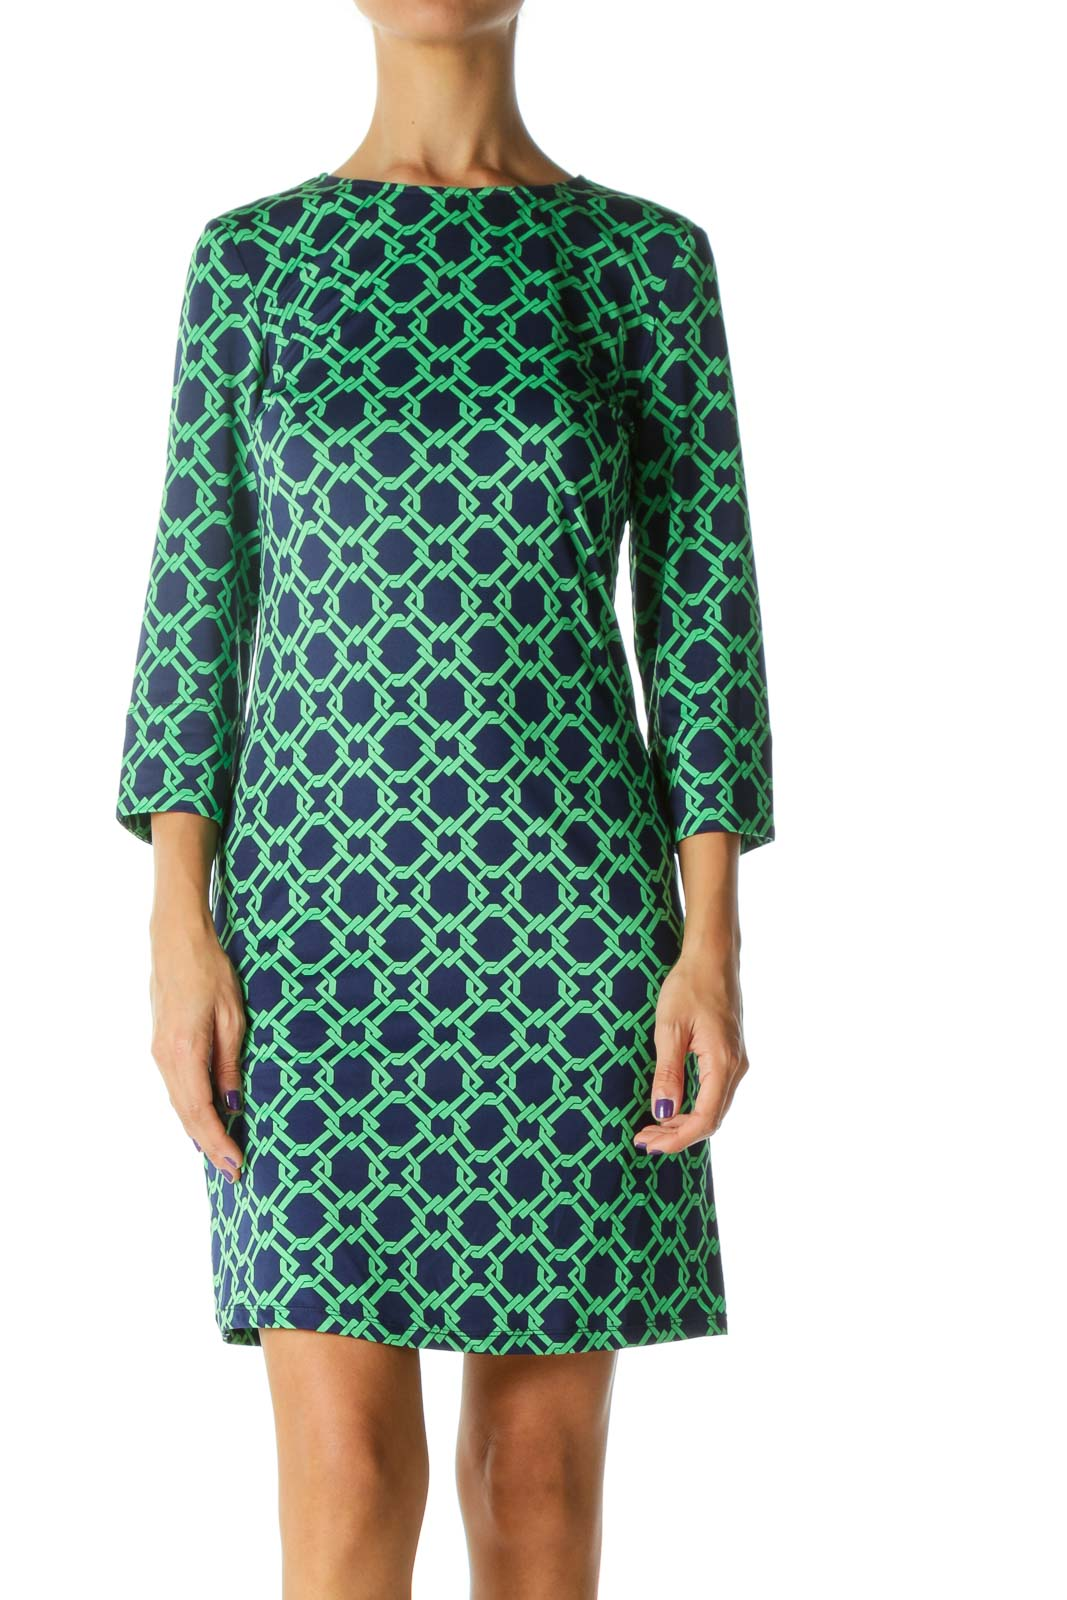 Blue Green Print 3/4 Sleeve Stretch Thin Day Dress